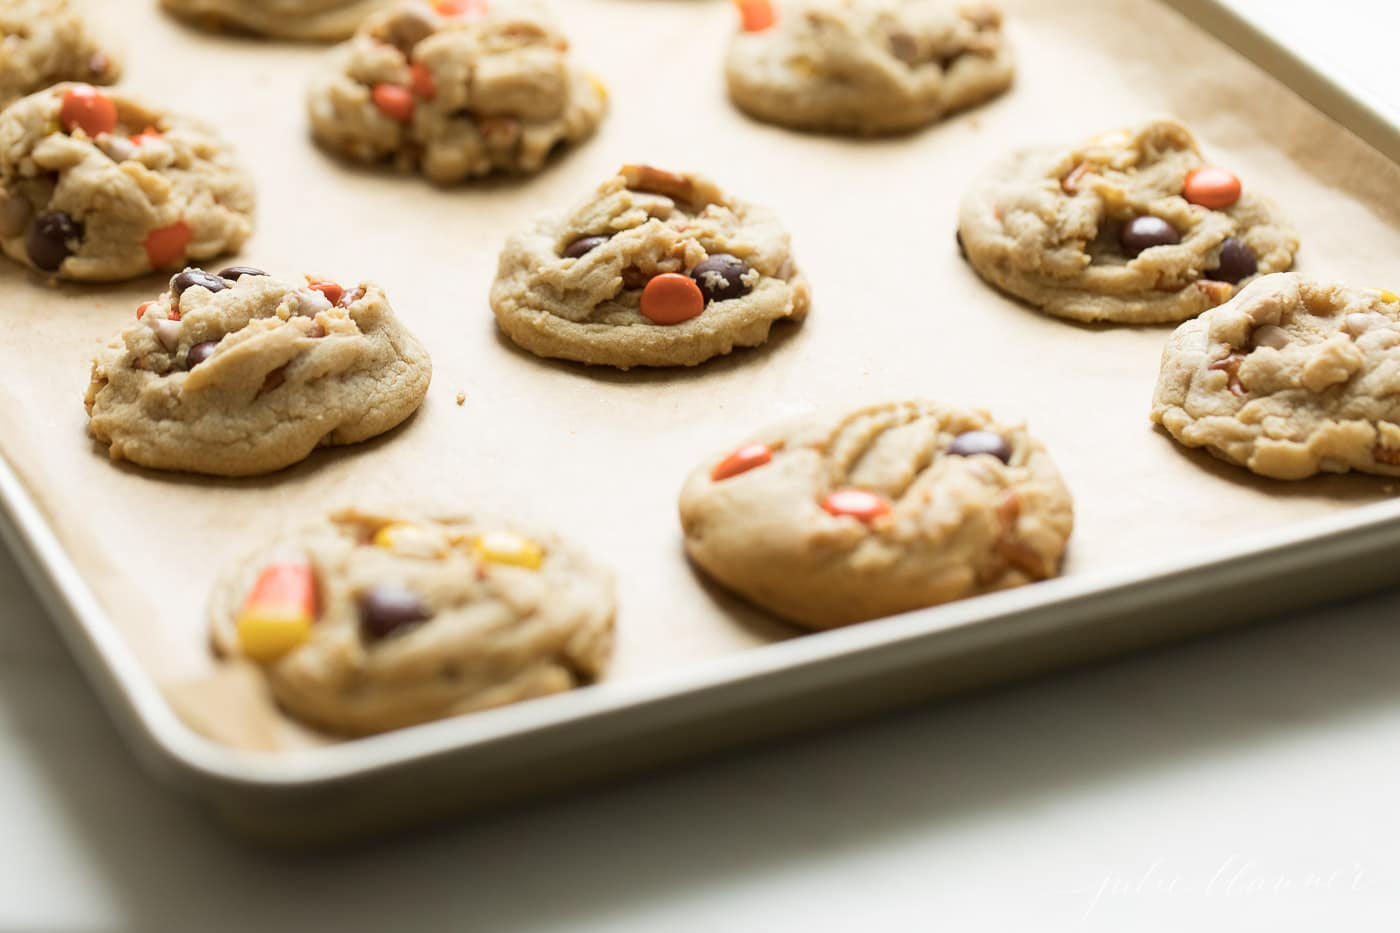 A baking pan covered in fresh baked cookies from a monster cookie recipe.